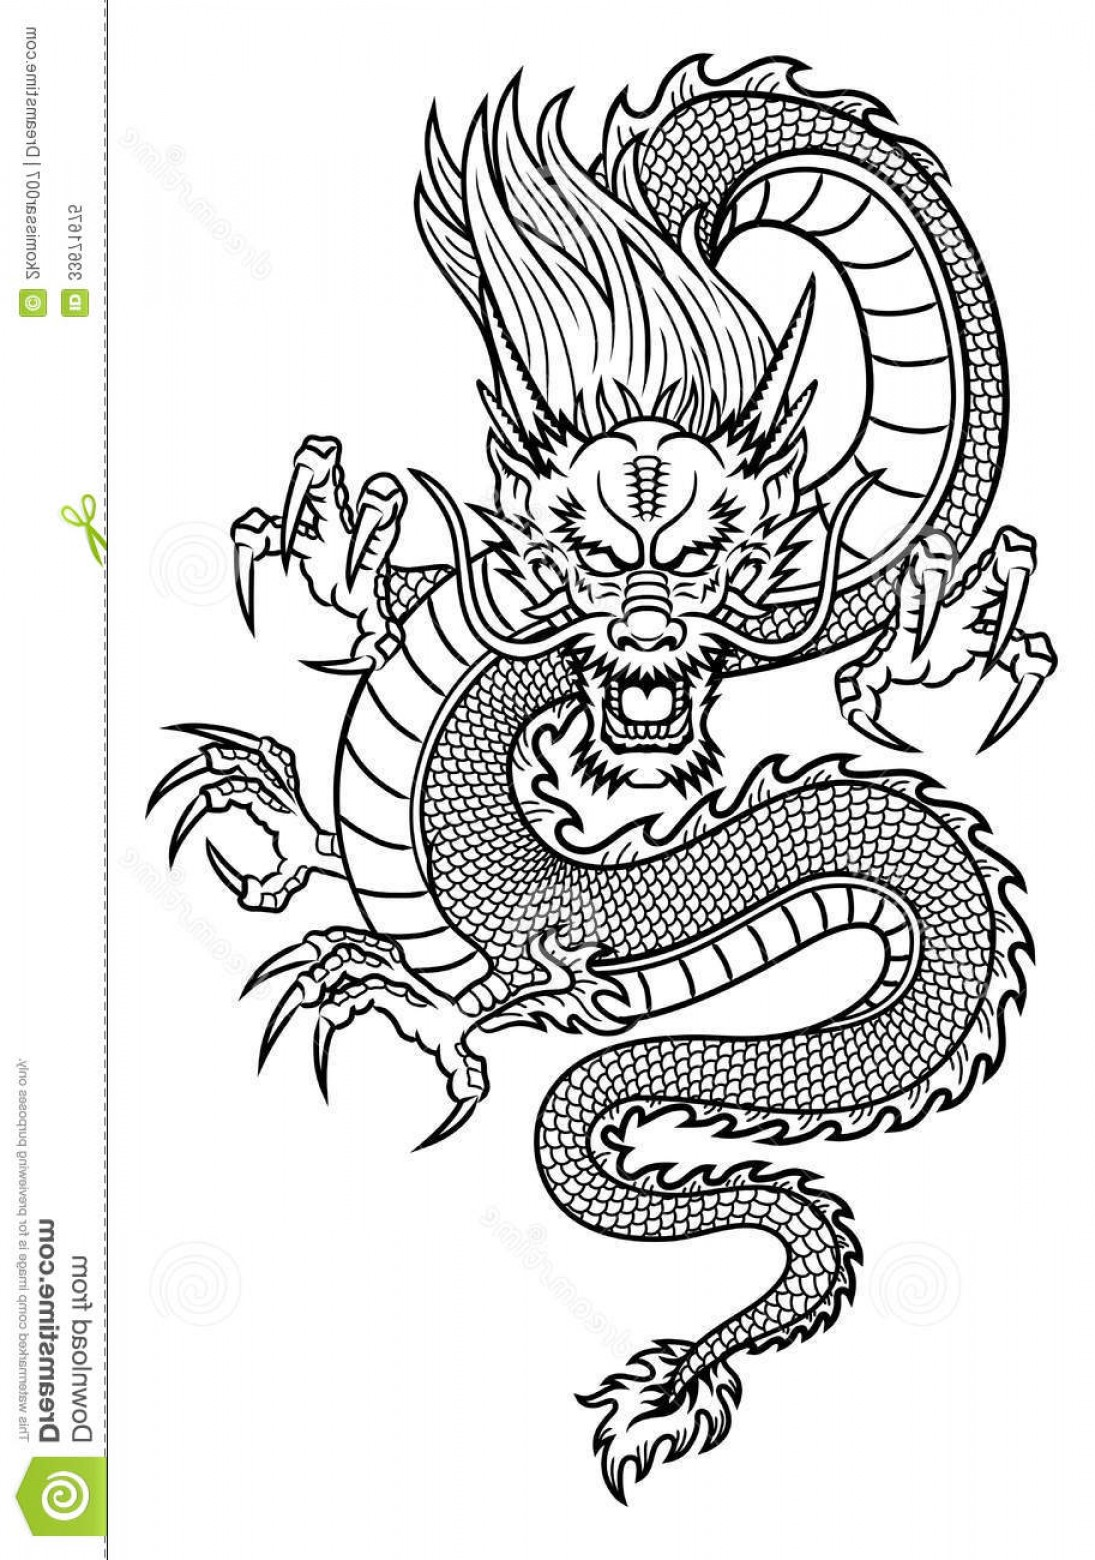 Oriental Dragon Vector: Royalty Free Stock Photo Chinese Dragon Traditional Asian Vector Illustration Ideal Mascot Tattoo T Shirt Graphic Image